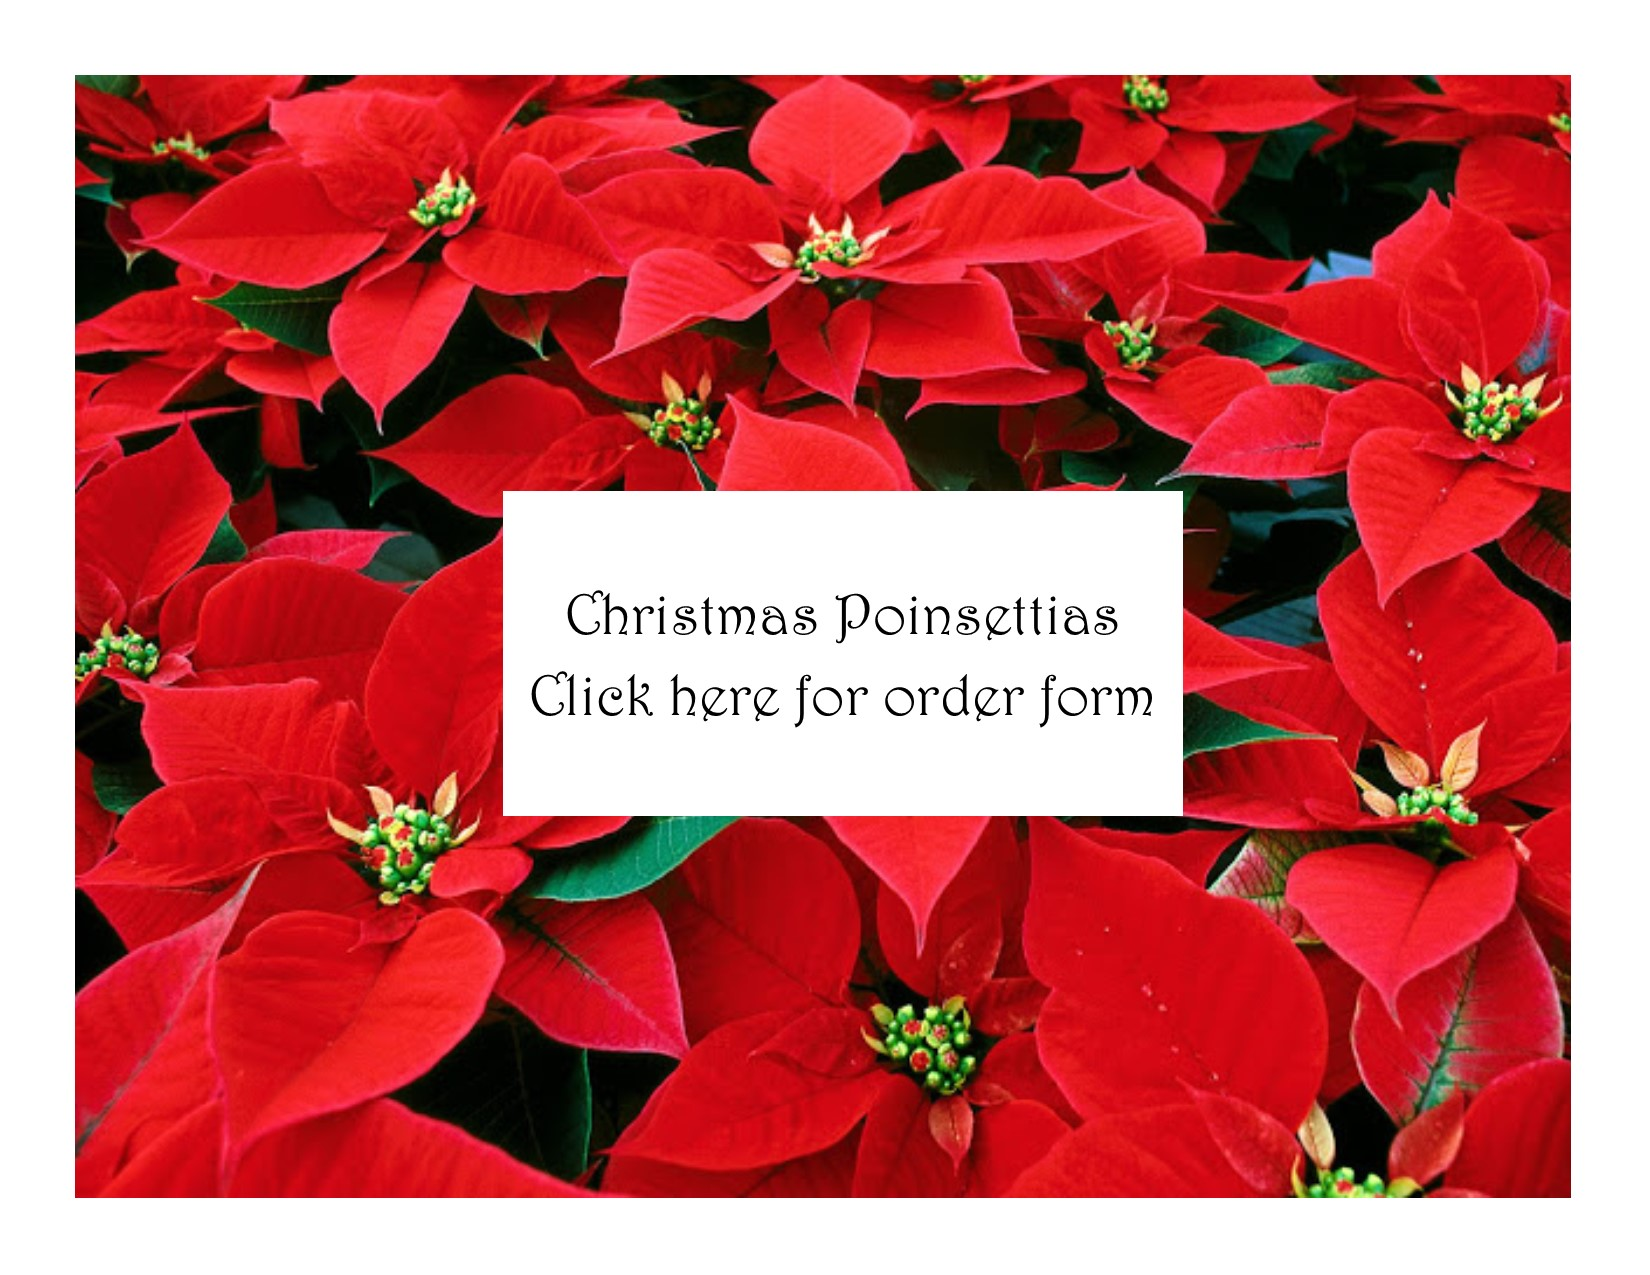 christmas poinsettia order form button